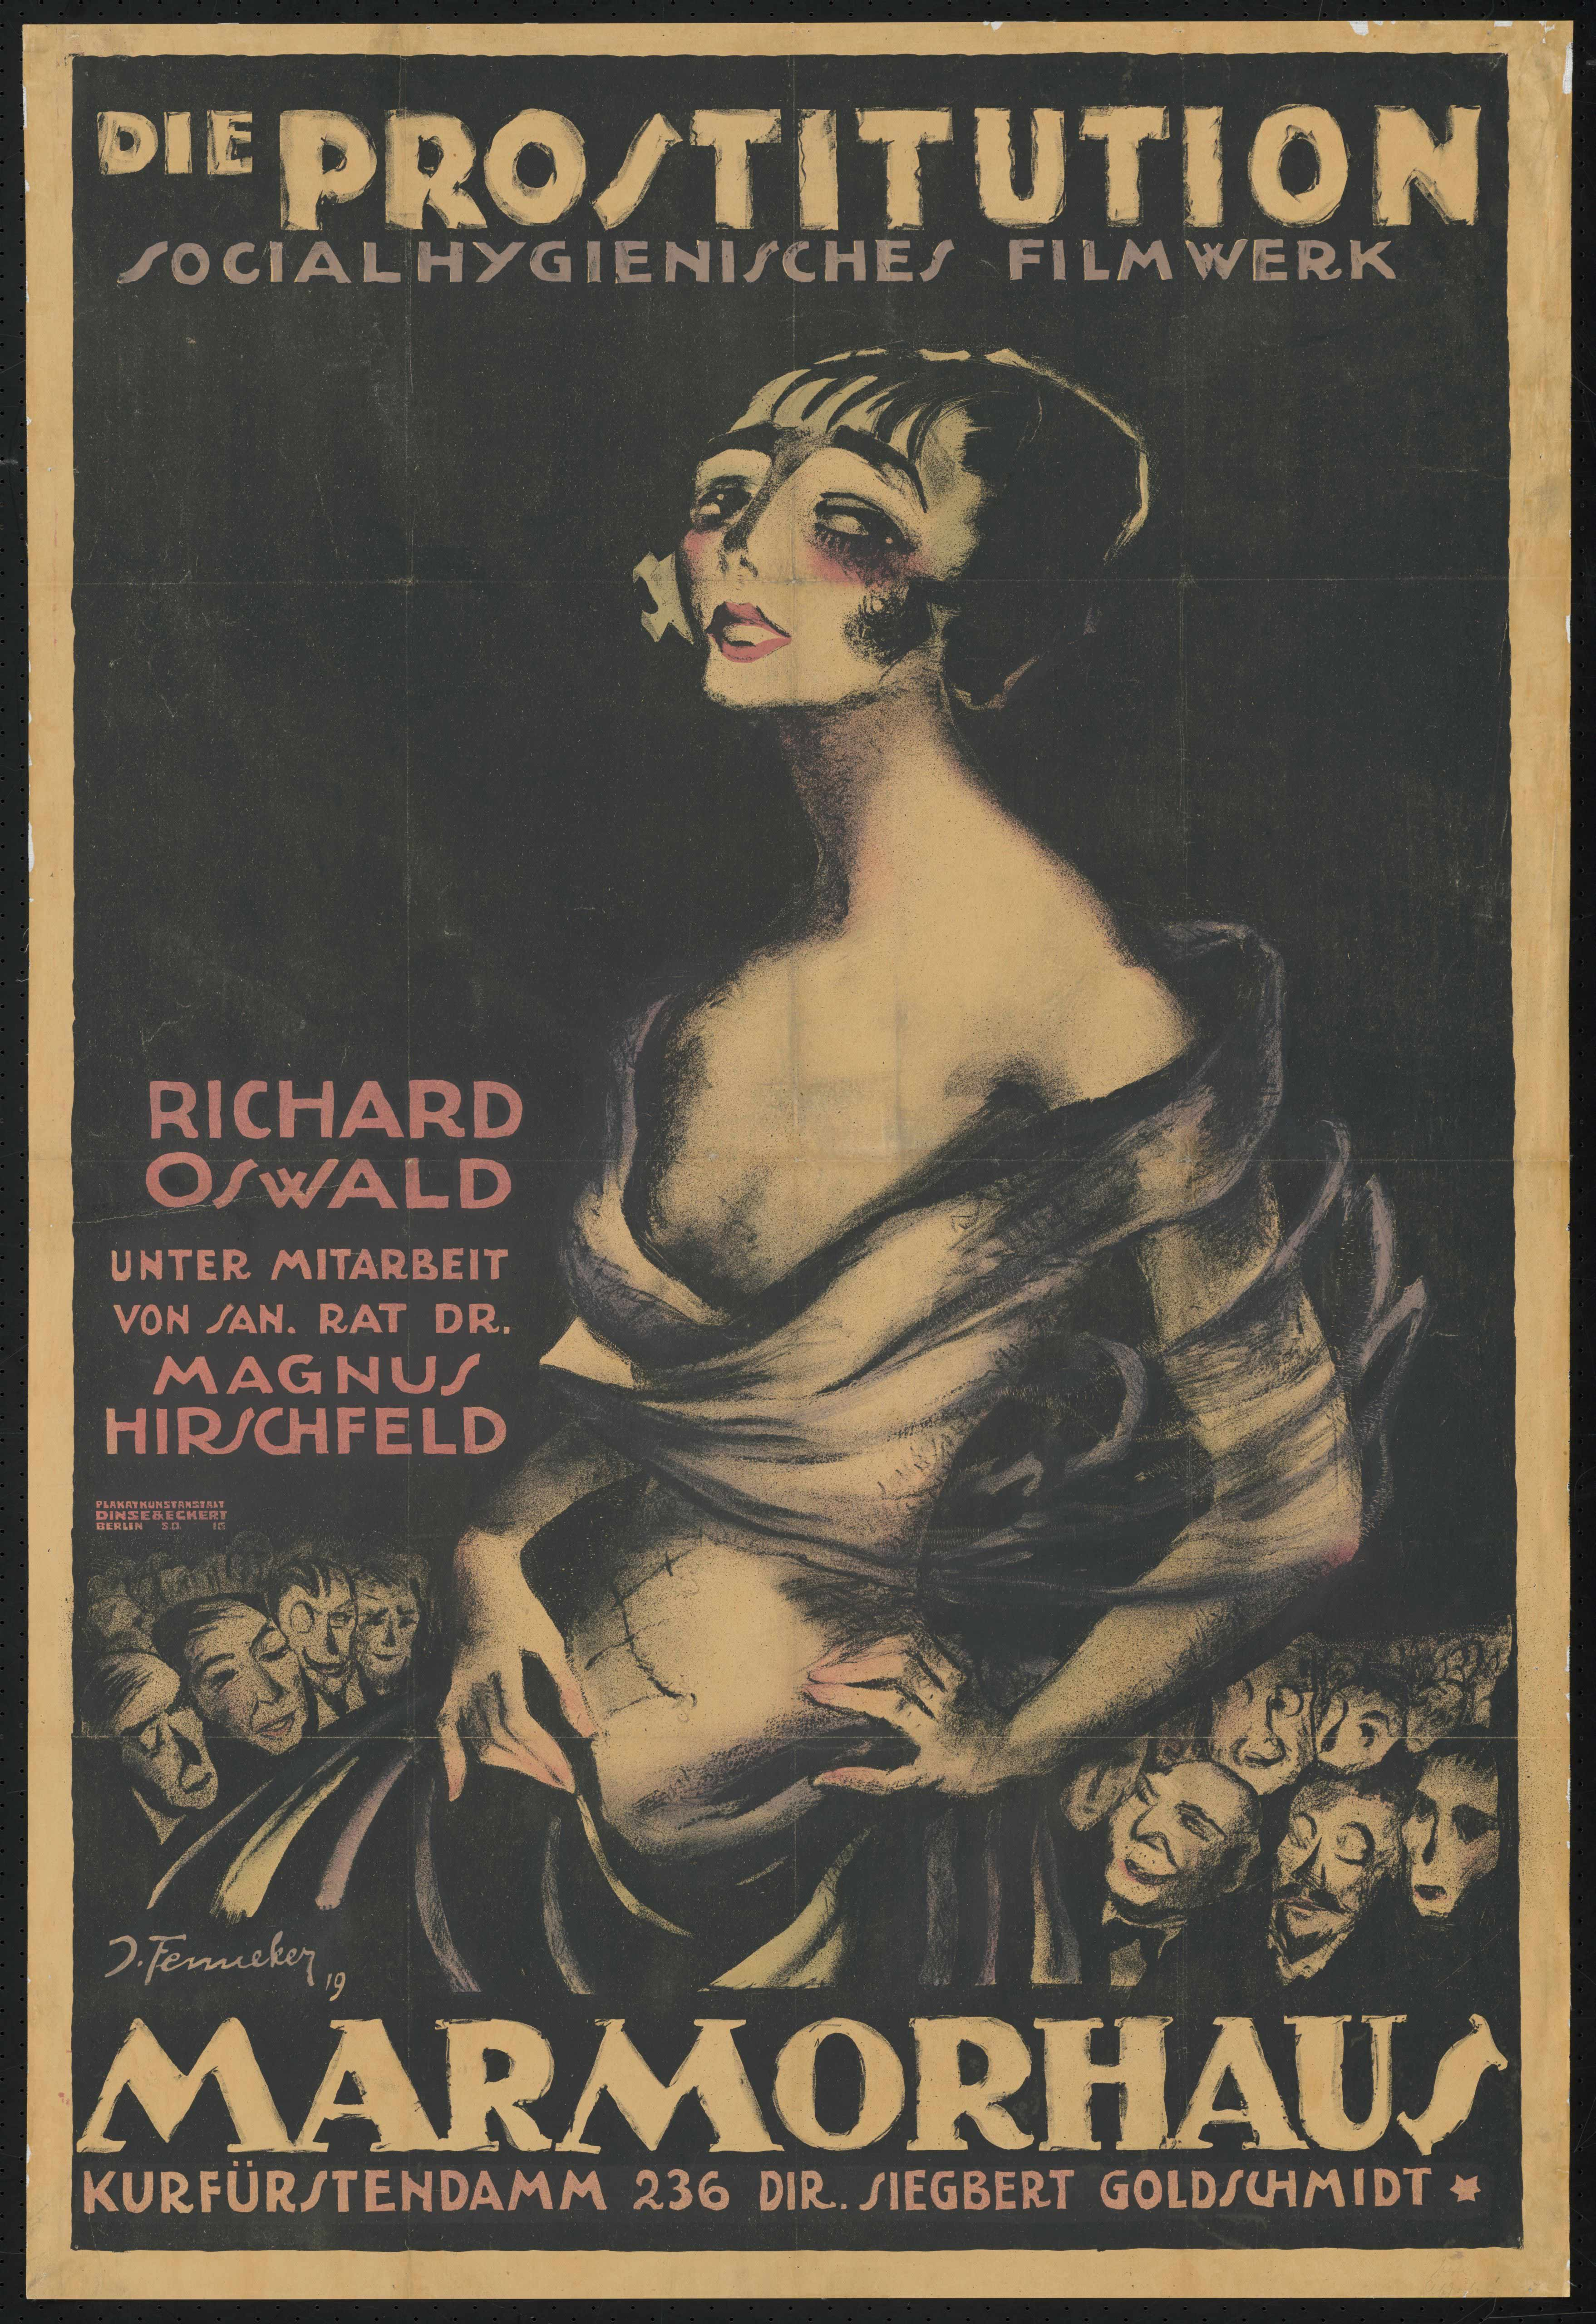 Film poster by Josef Fenneker: Prostitution, Germany 1918, directed by Richard Oswald